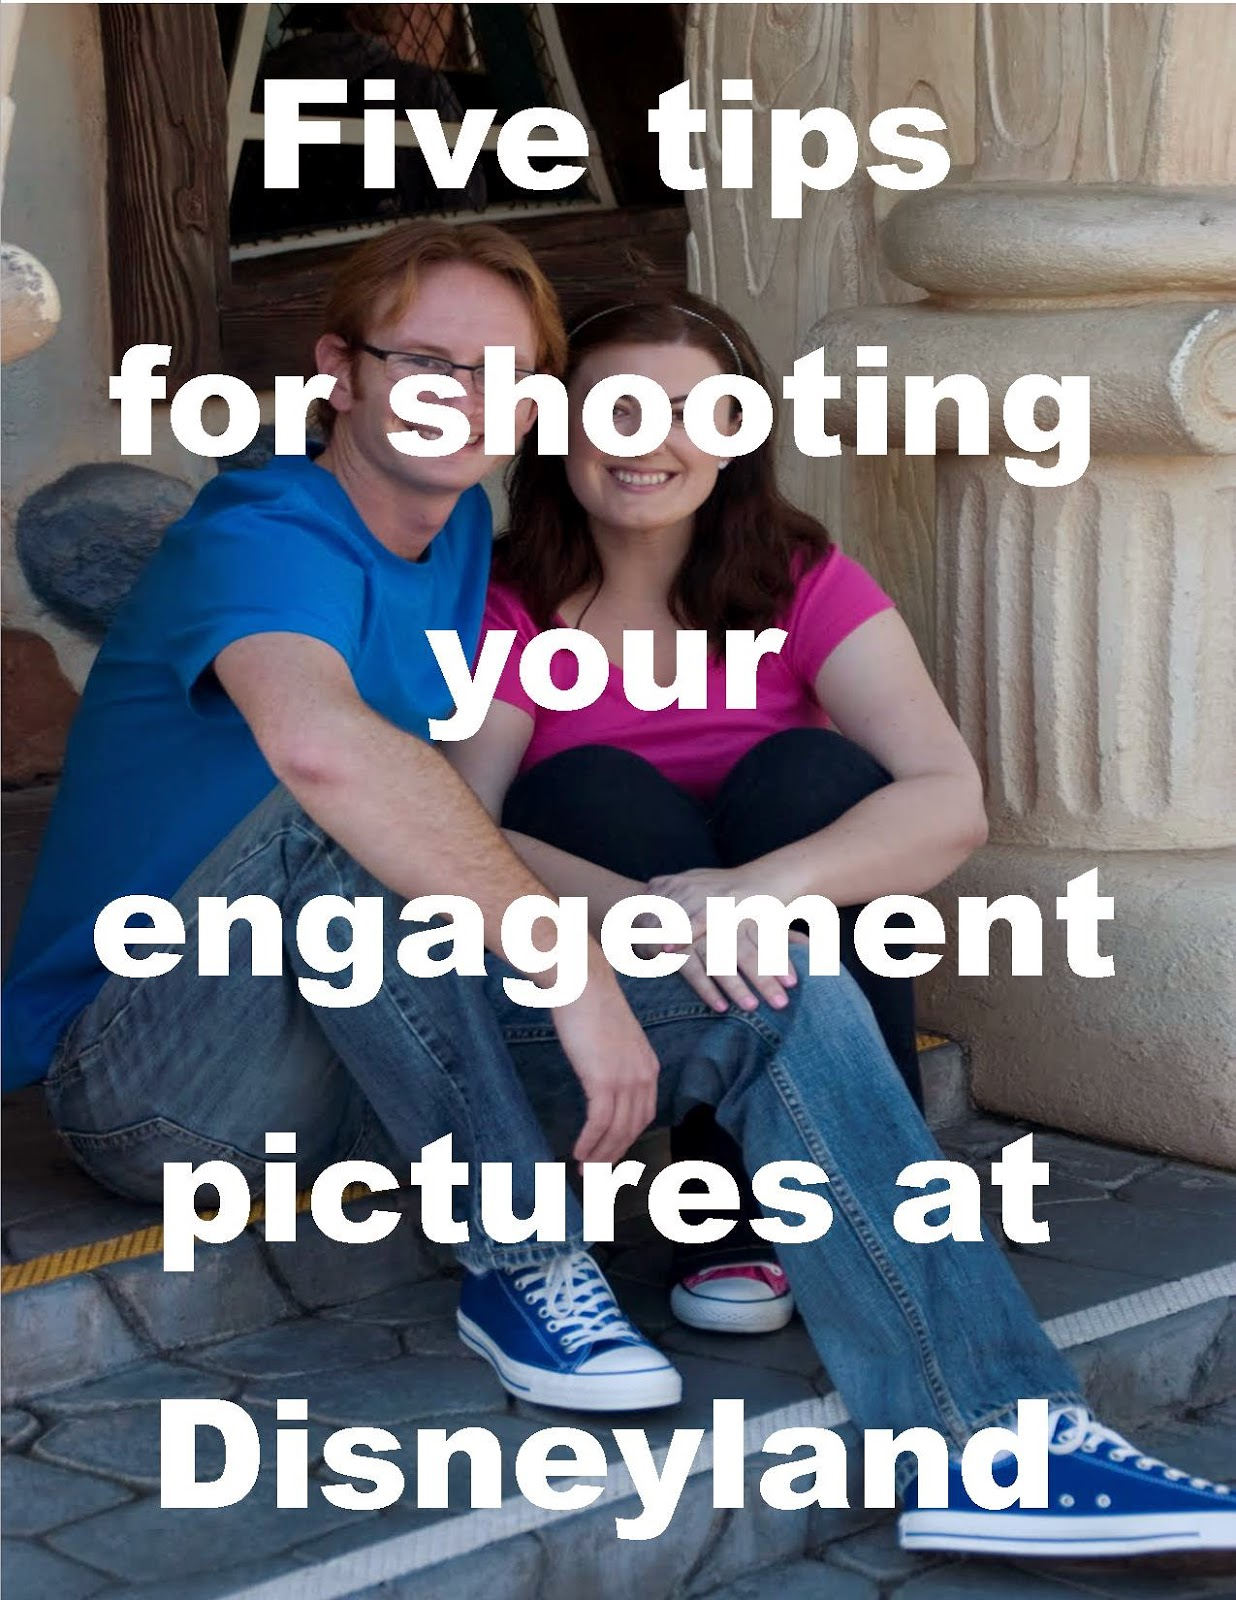 Tips for Taking Your Engagement Pictures at Disneyland